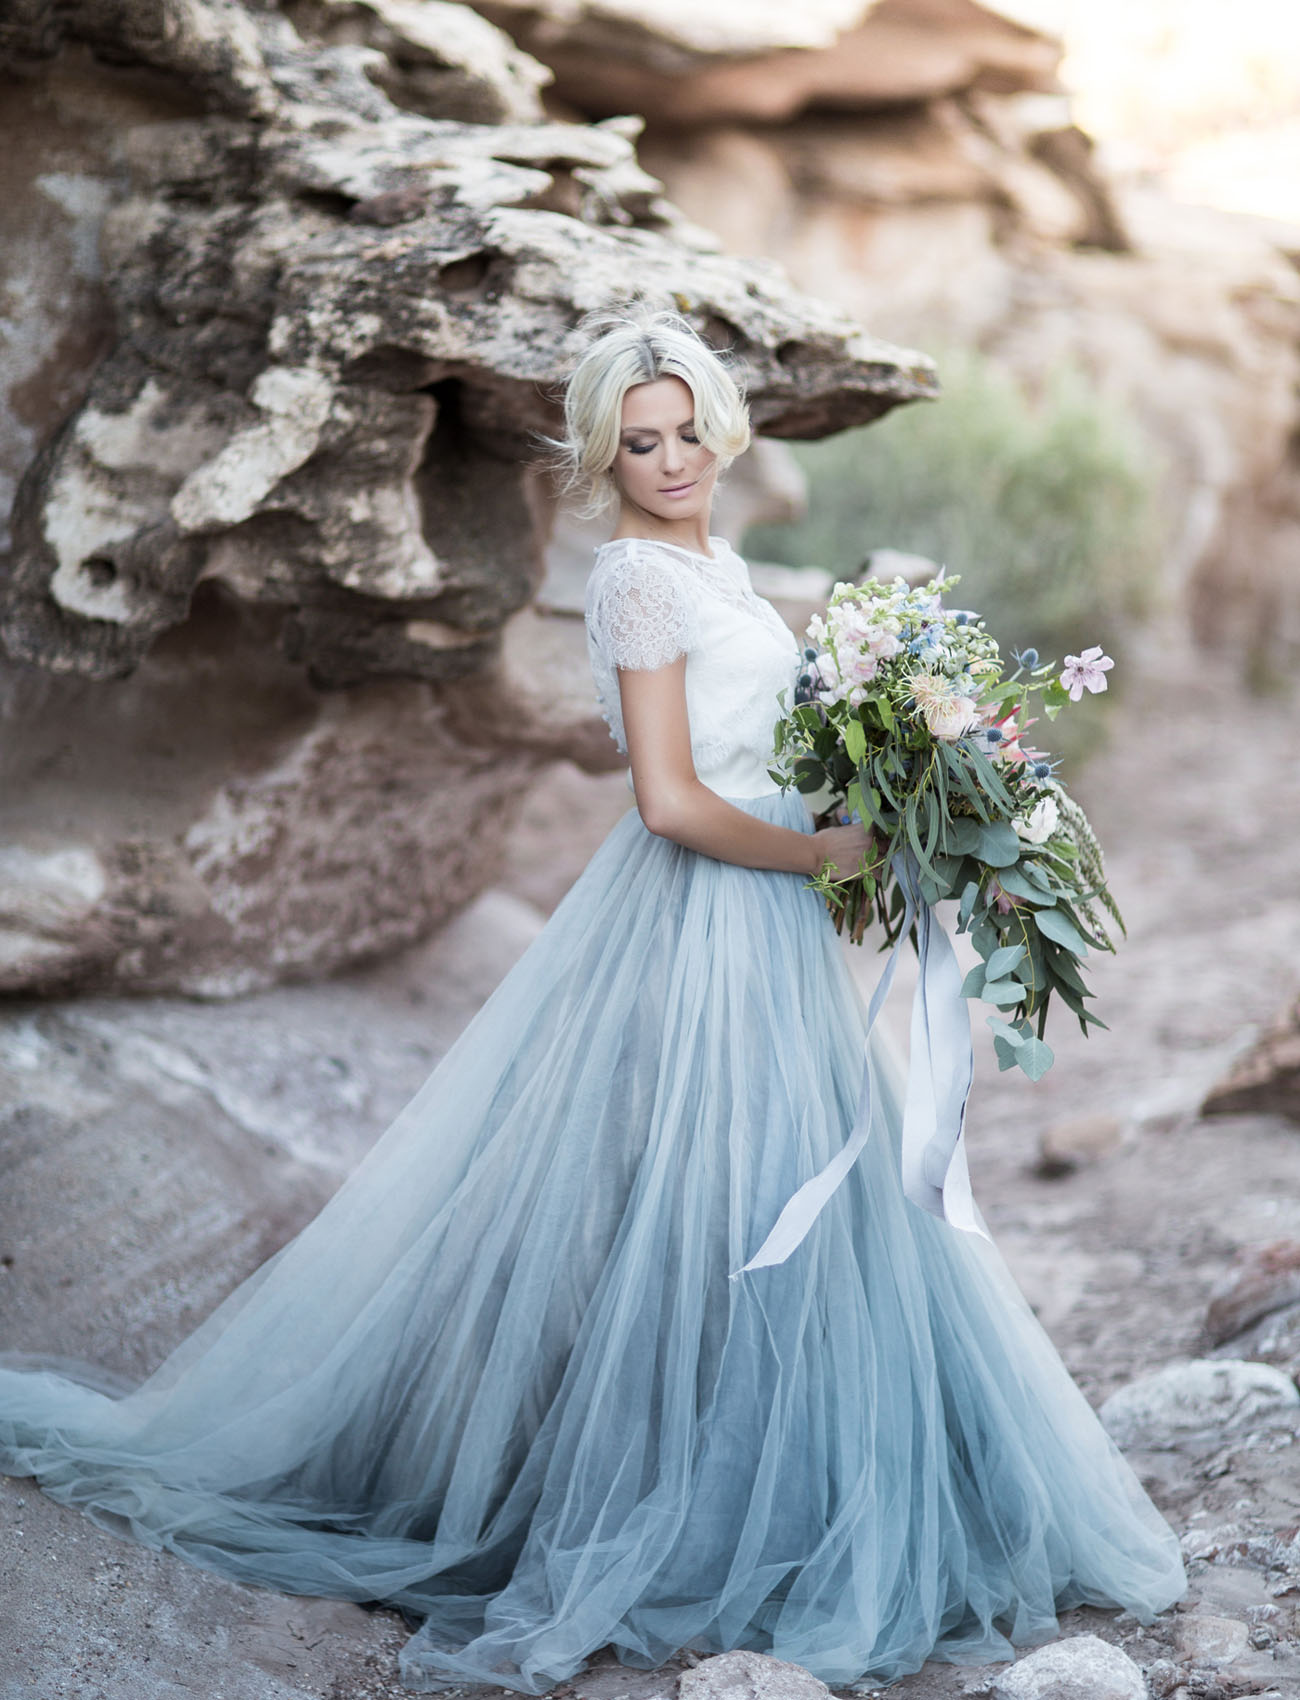 Smokey blue tulle gown